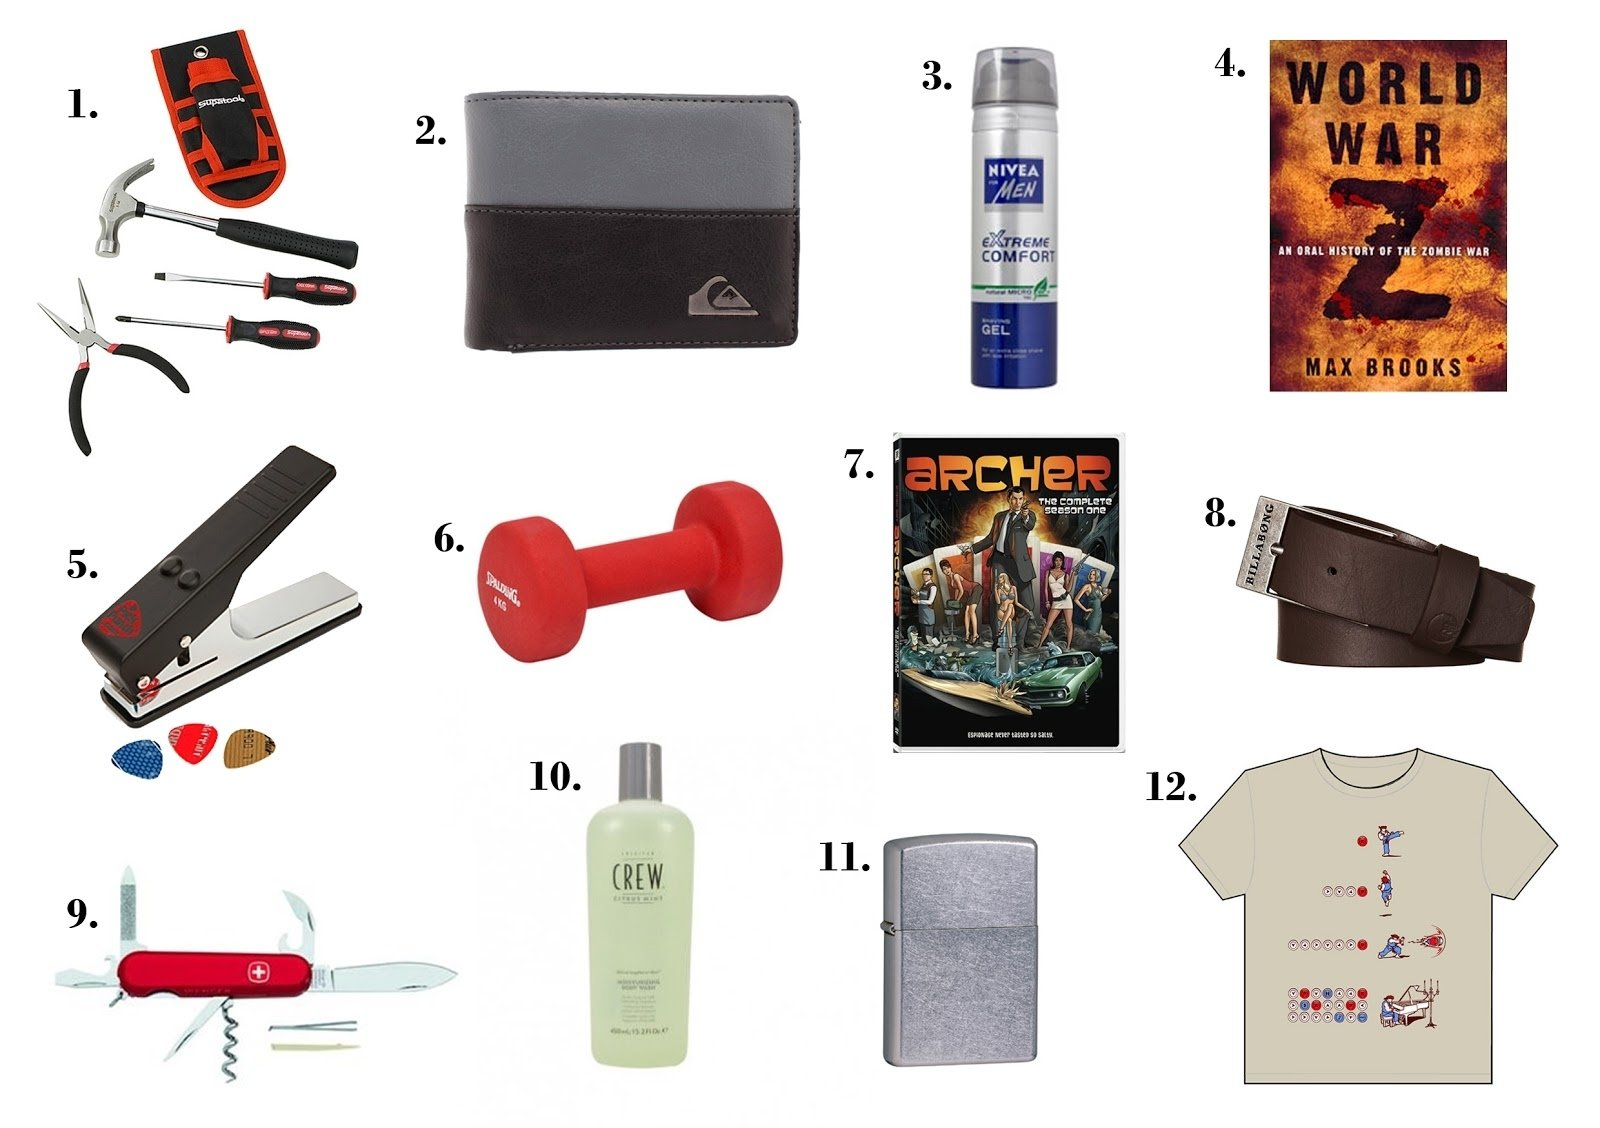 10 Fabulous Stocking Stuffers For Men Ideas mishelles sleepy time the holiday gift guide 2012 part 6 1 2020